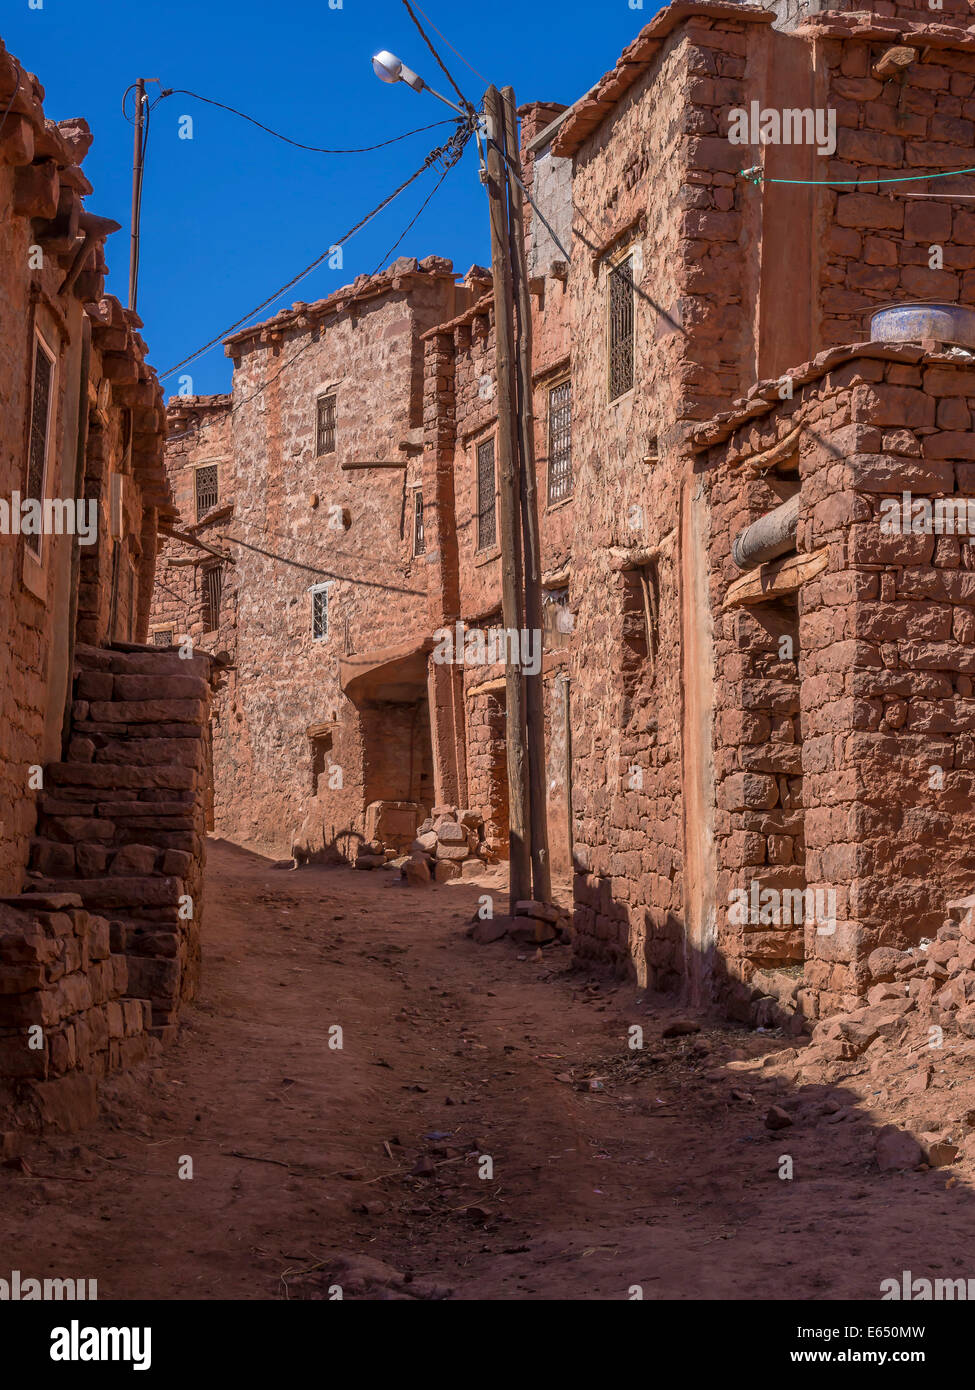 Anammer adobe village, Ourika Valley, Atlas Mountains, Marrakech-Tensift-Al Haouz, Morocco - Stock Image